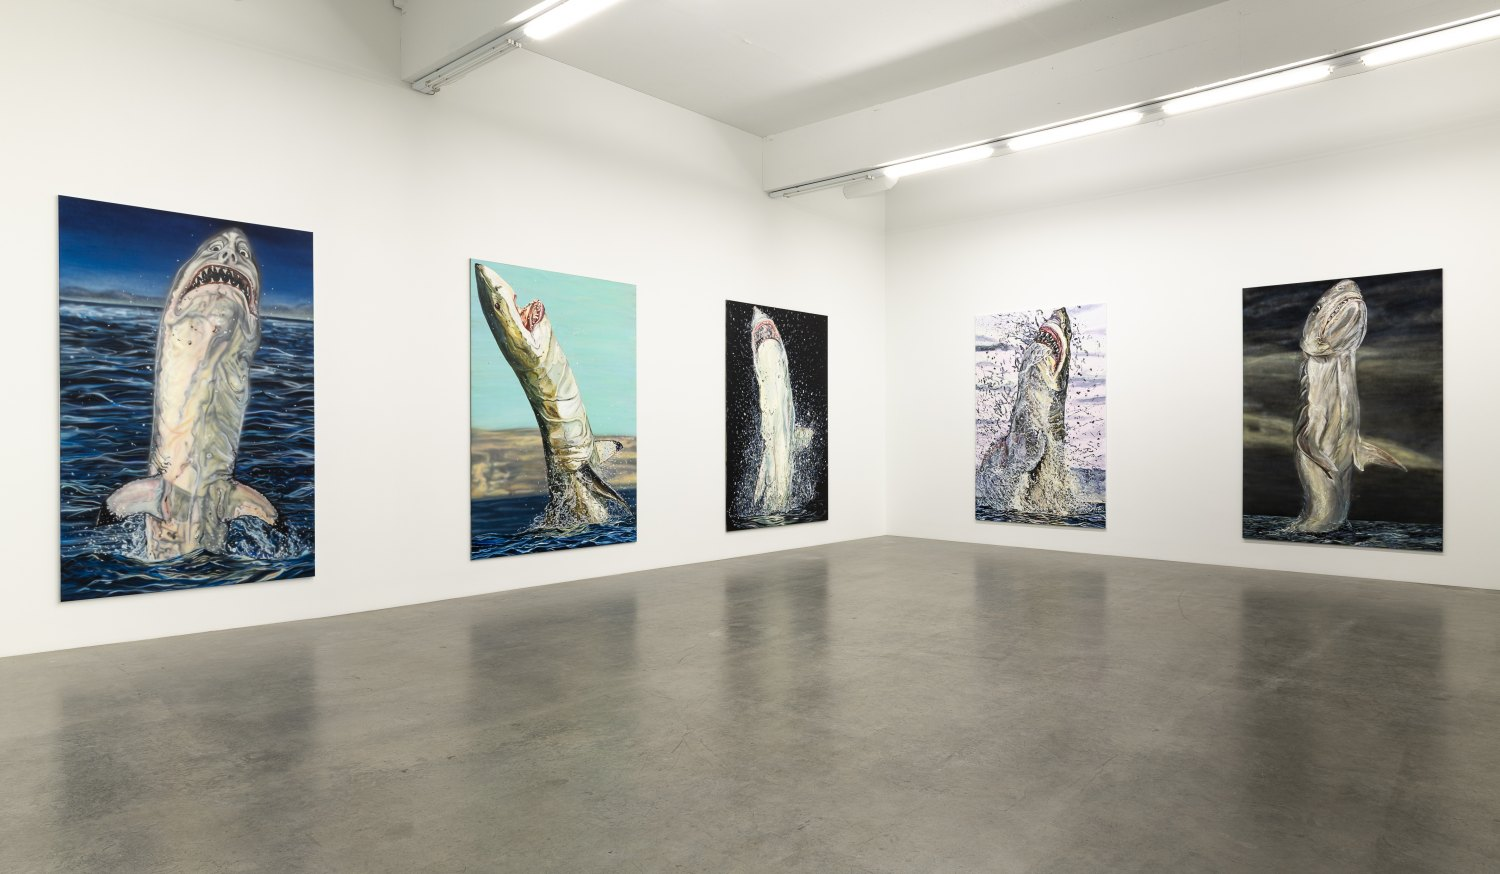 Installation view, Jana Euler, Great White Fear, Galerie Neu, 2019